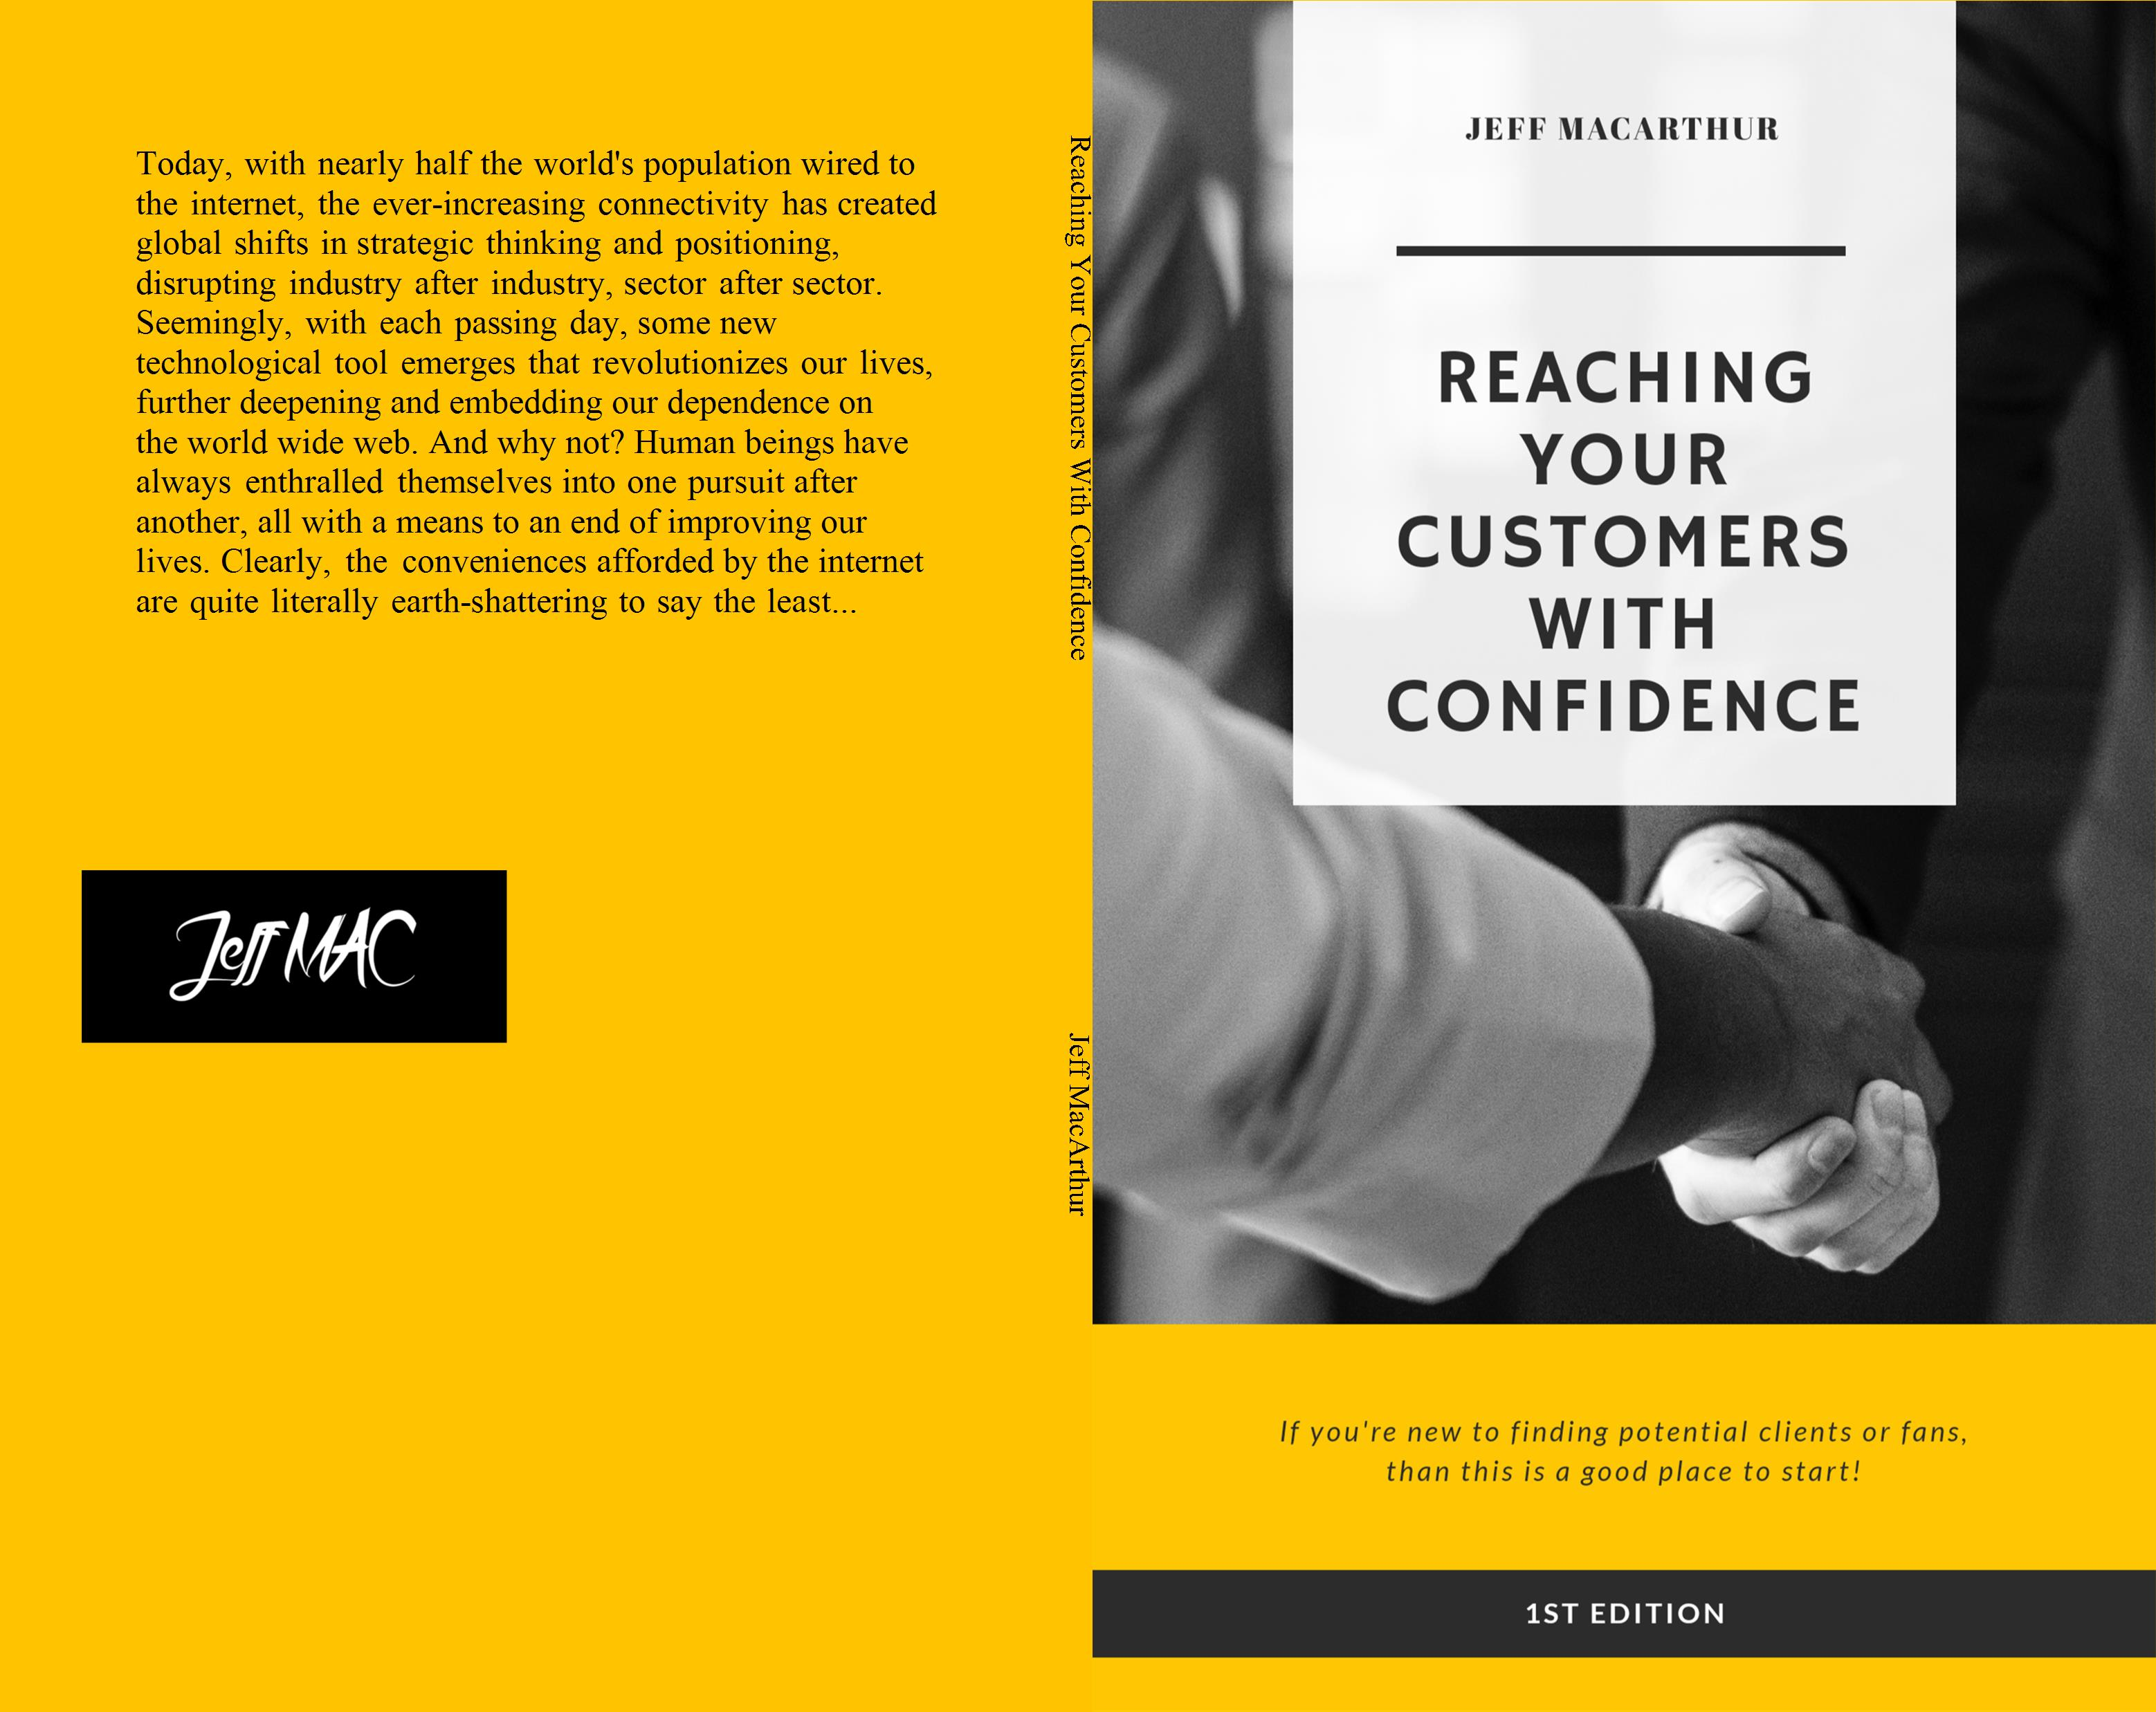 Reaching Your Customers With Confidence cover image